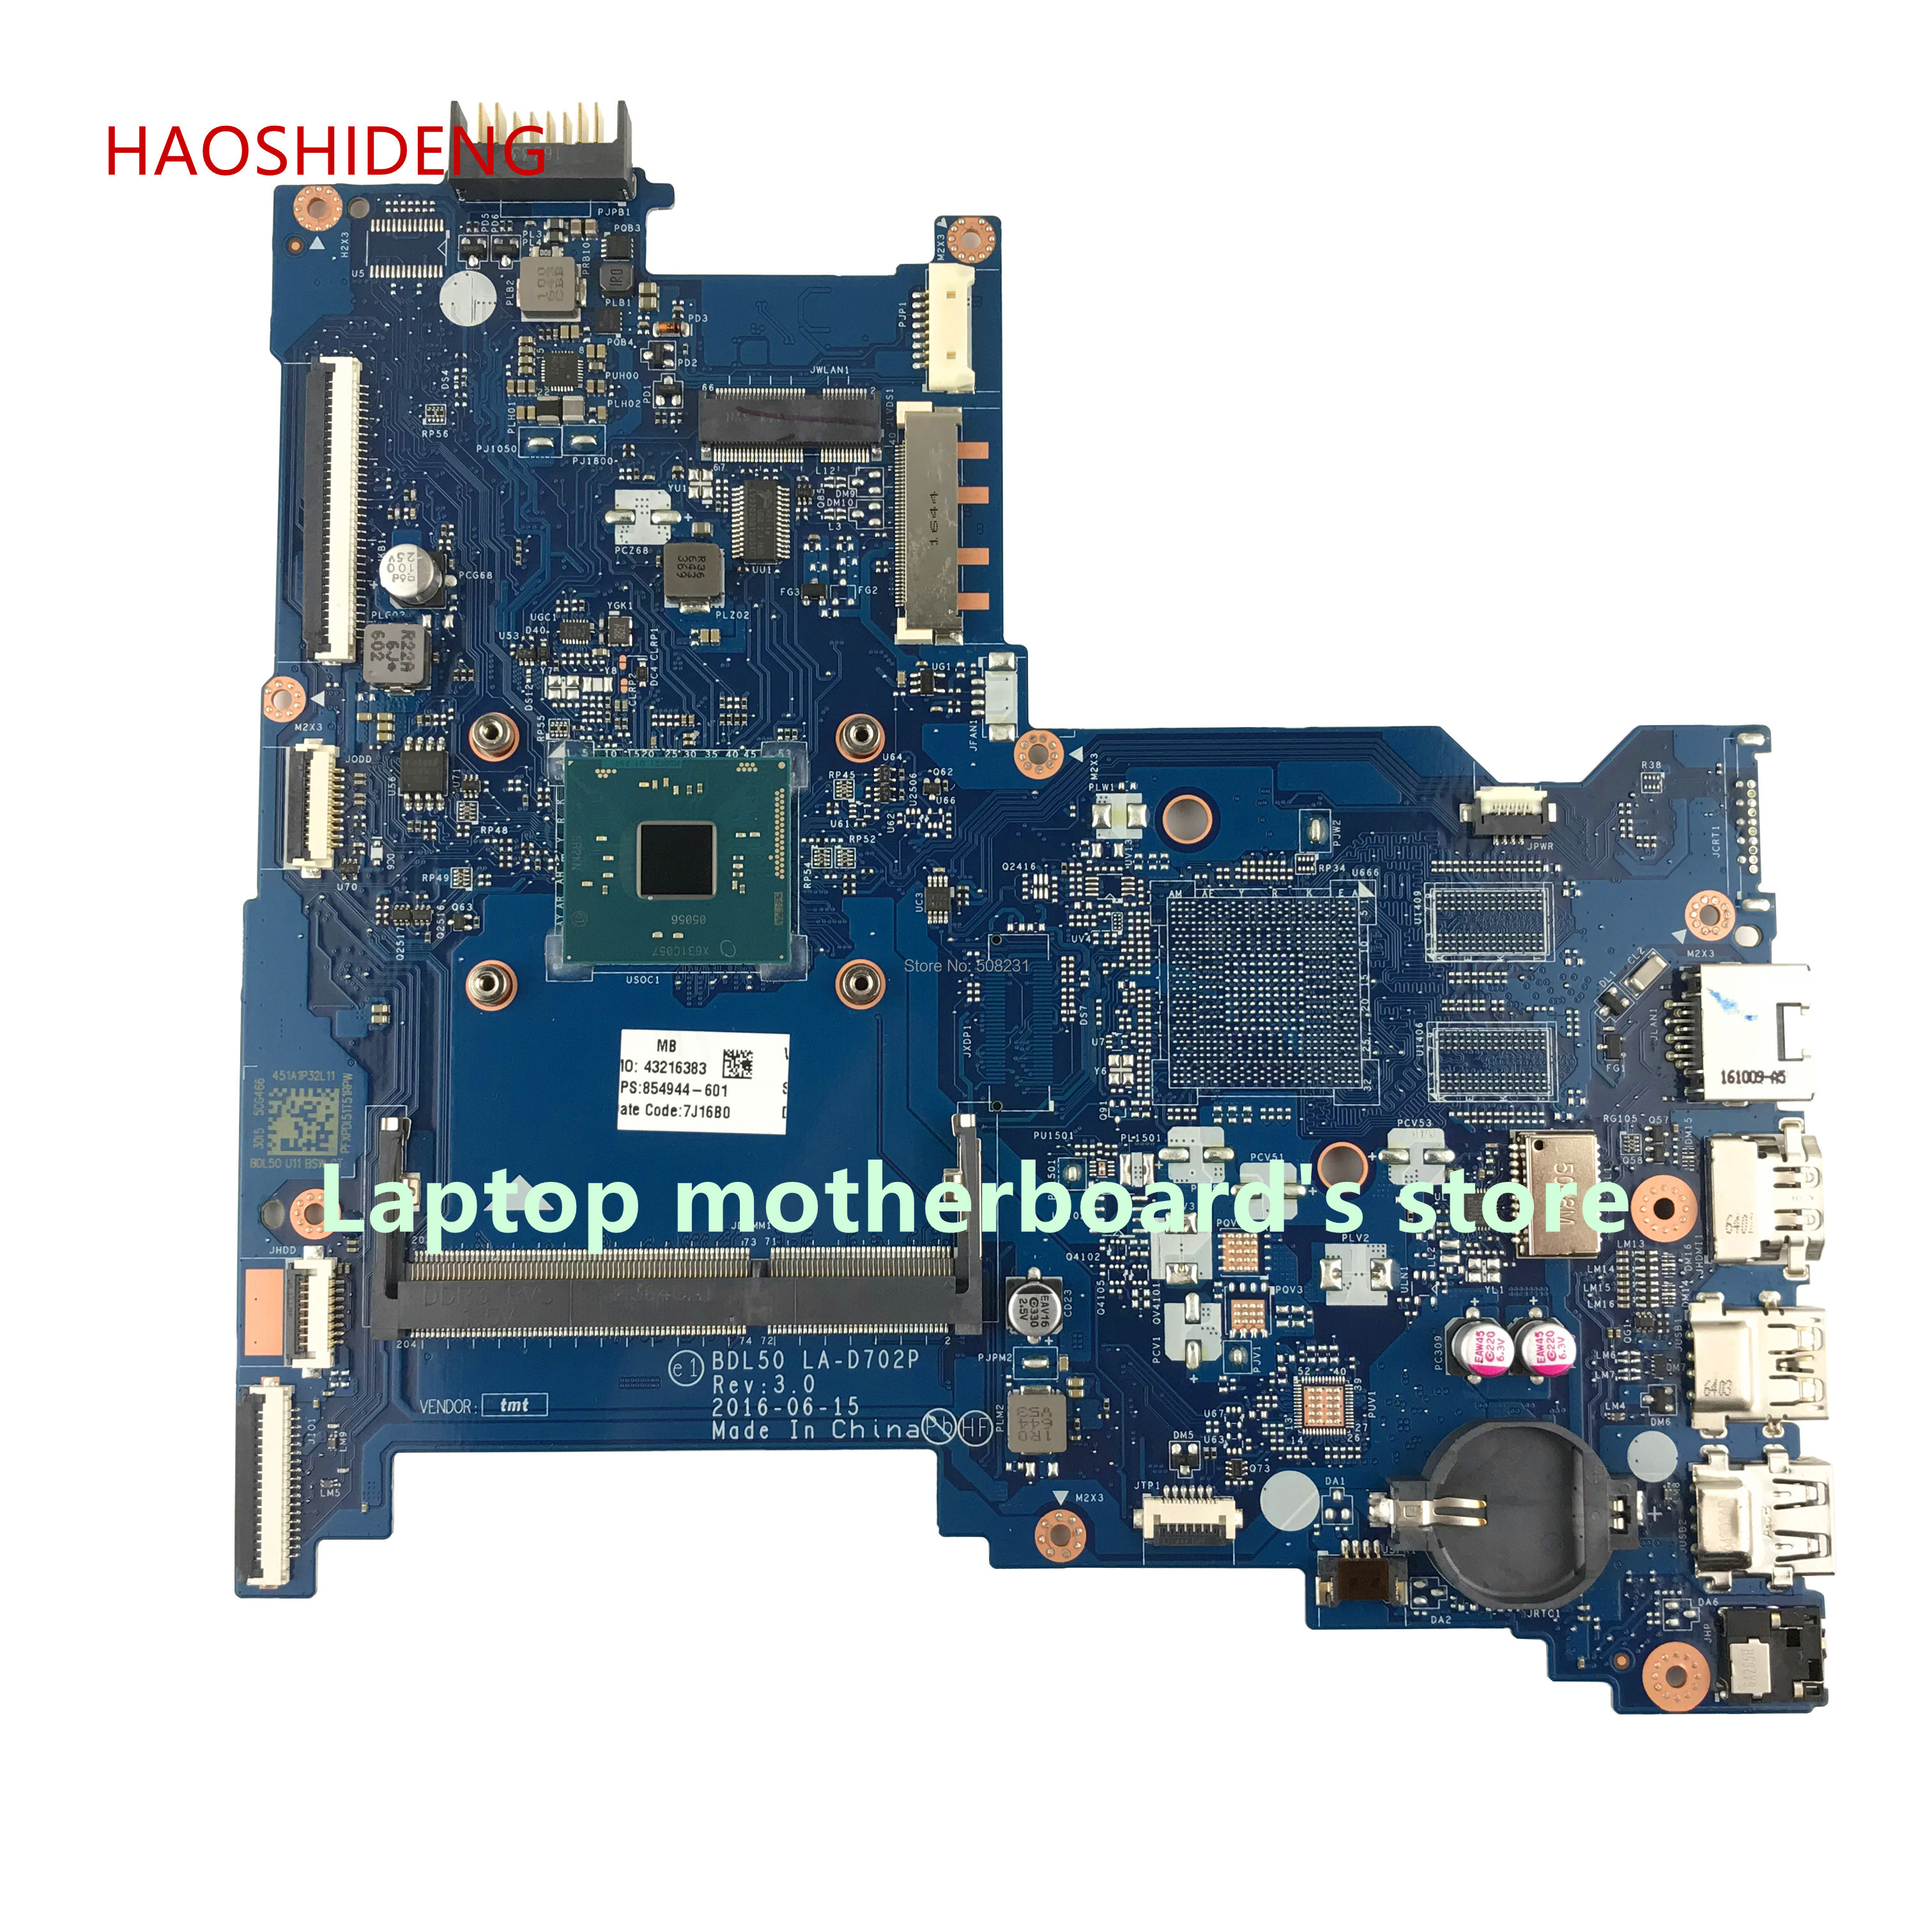 HAOSHIDENG 854944-601 854944-001 BDL50 LA-D702P for HP NOTEBOOK 15-AY 15-AC 15-AY018DS laptop mainboard with N3060 fully Tested haoshideng 854944 601 854944 001 mainboard for hp 250 g5 laptop motherboard bdl50 la d702p 854944 001 all functions fully tested